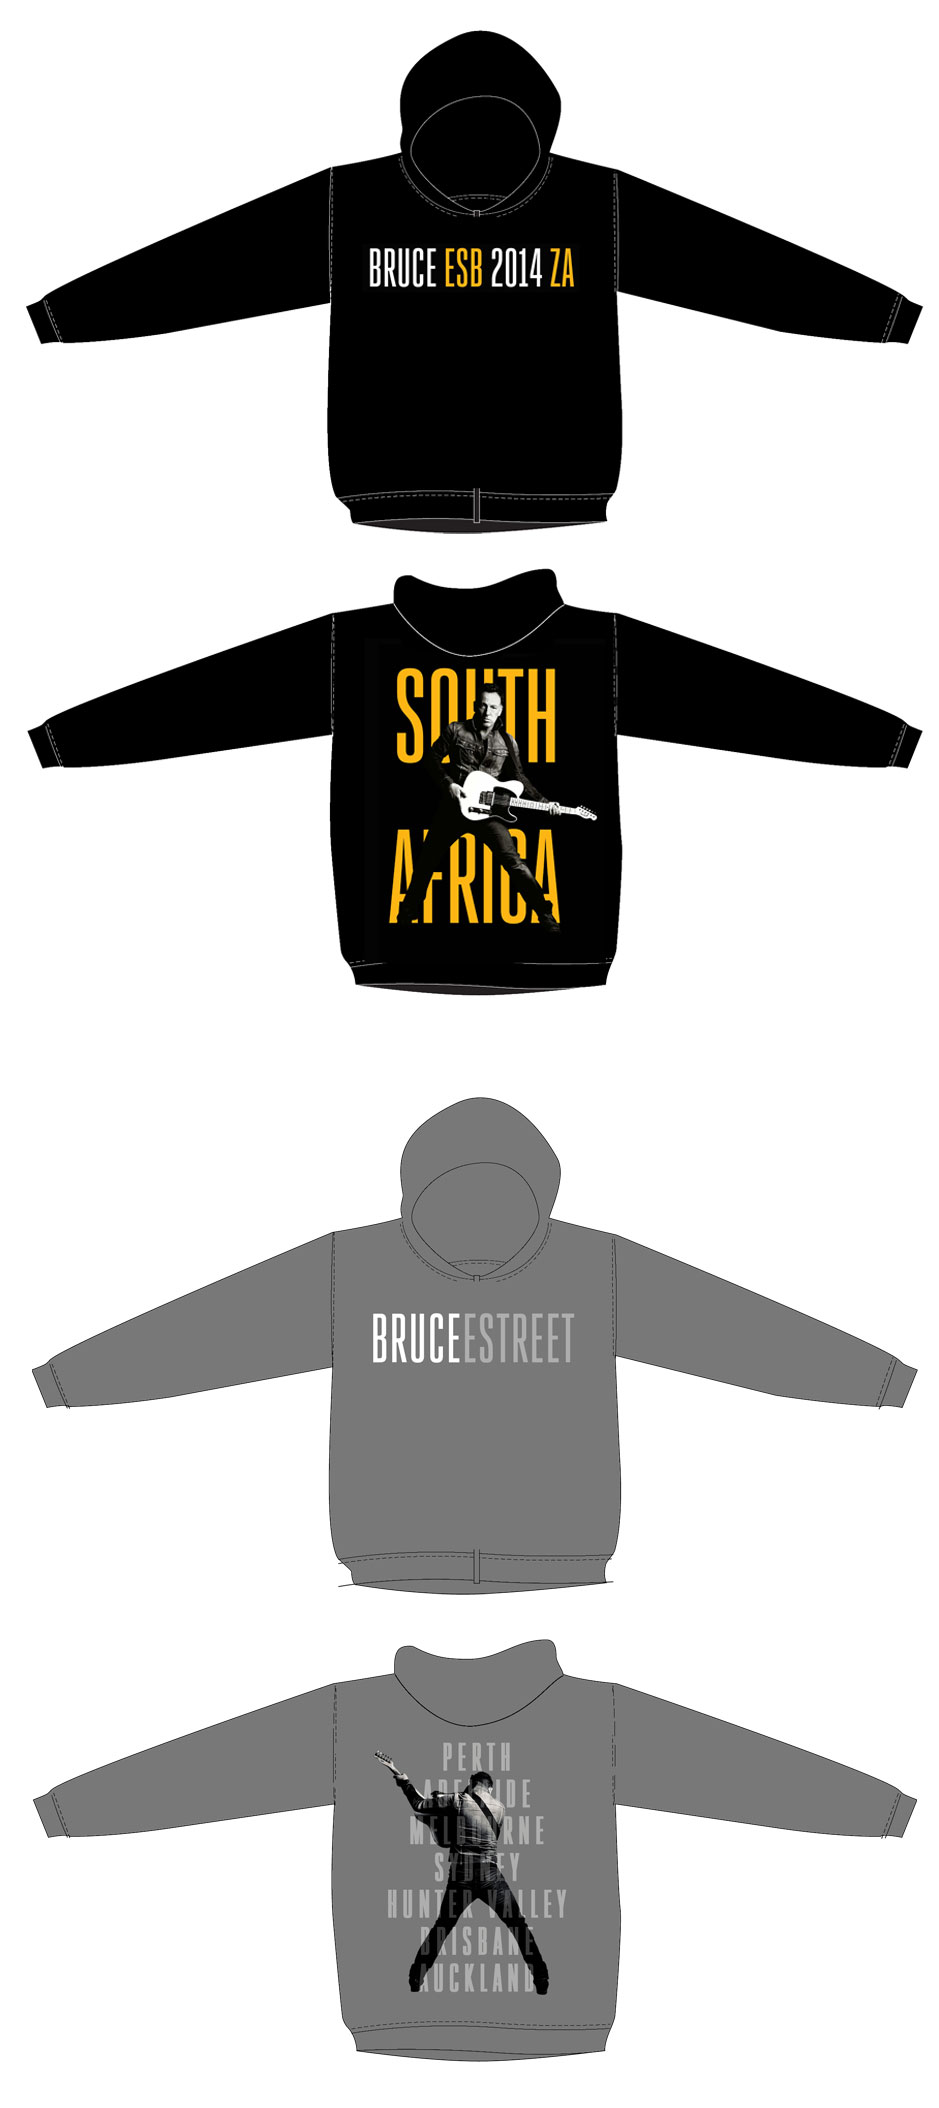 South Africa and Australia hoodies